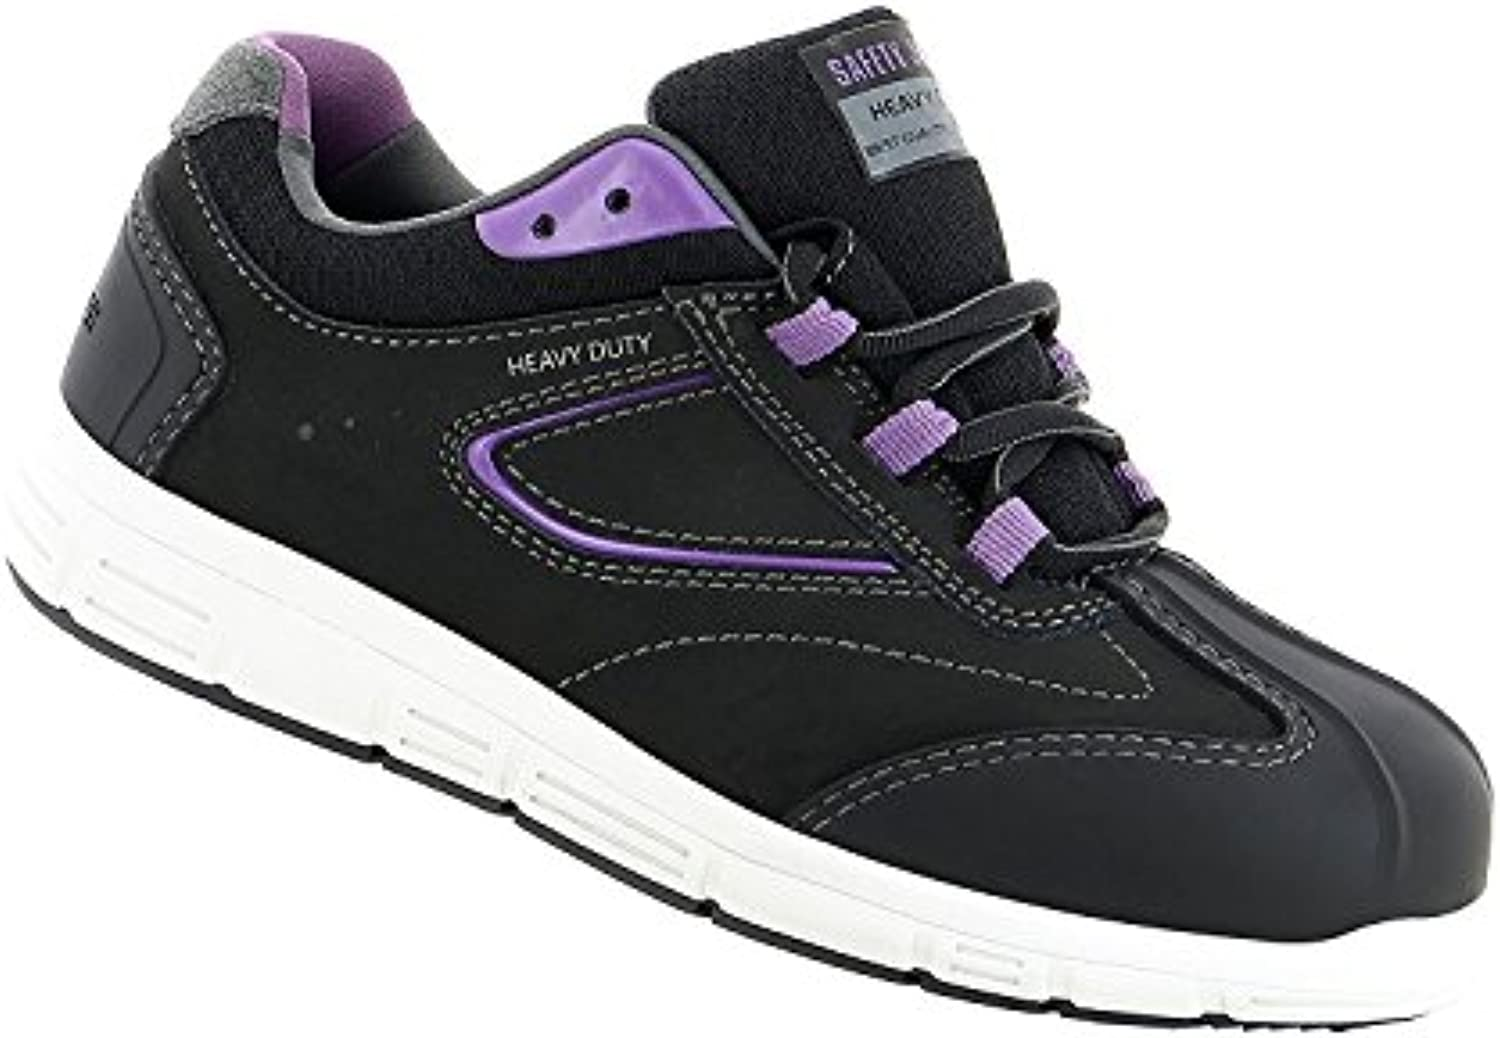 82416fb96cc Safety Jogger Jogger Women s Safety Shoes B01HK45EDG Safety Parent  B01HK45EDG bcff83b - sydicom.com